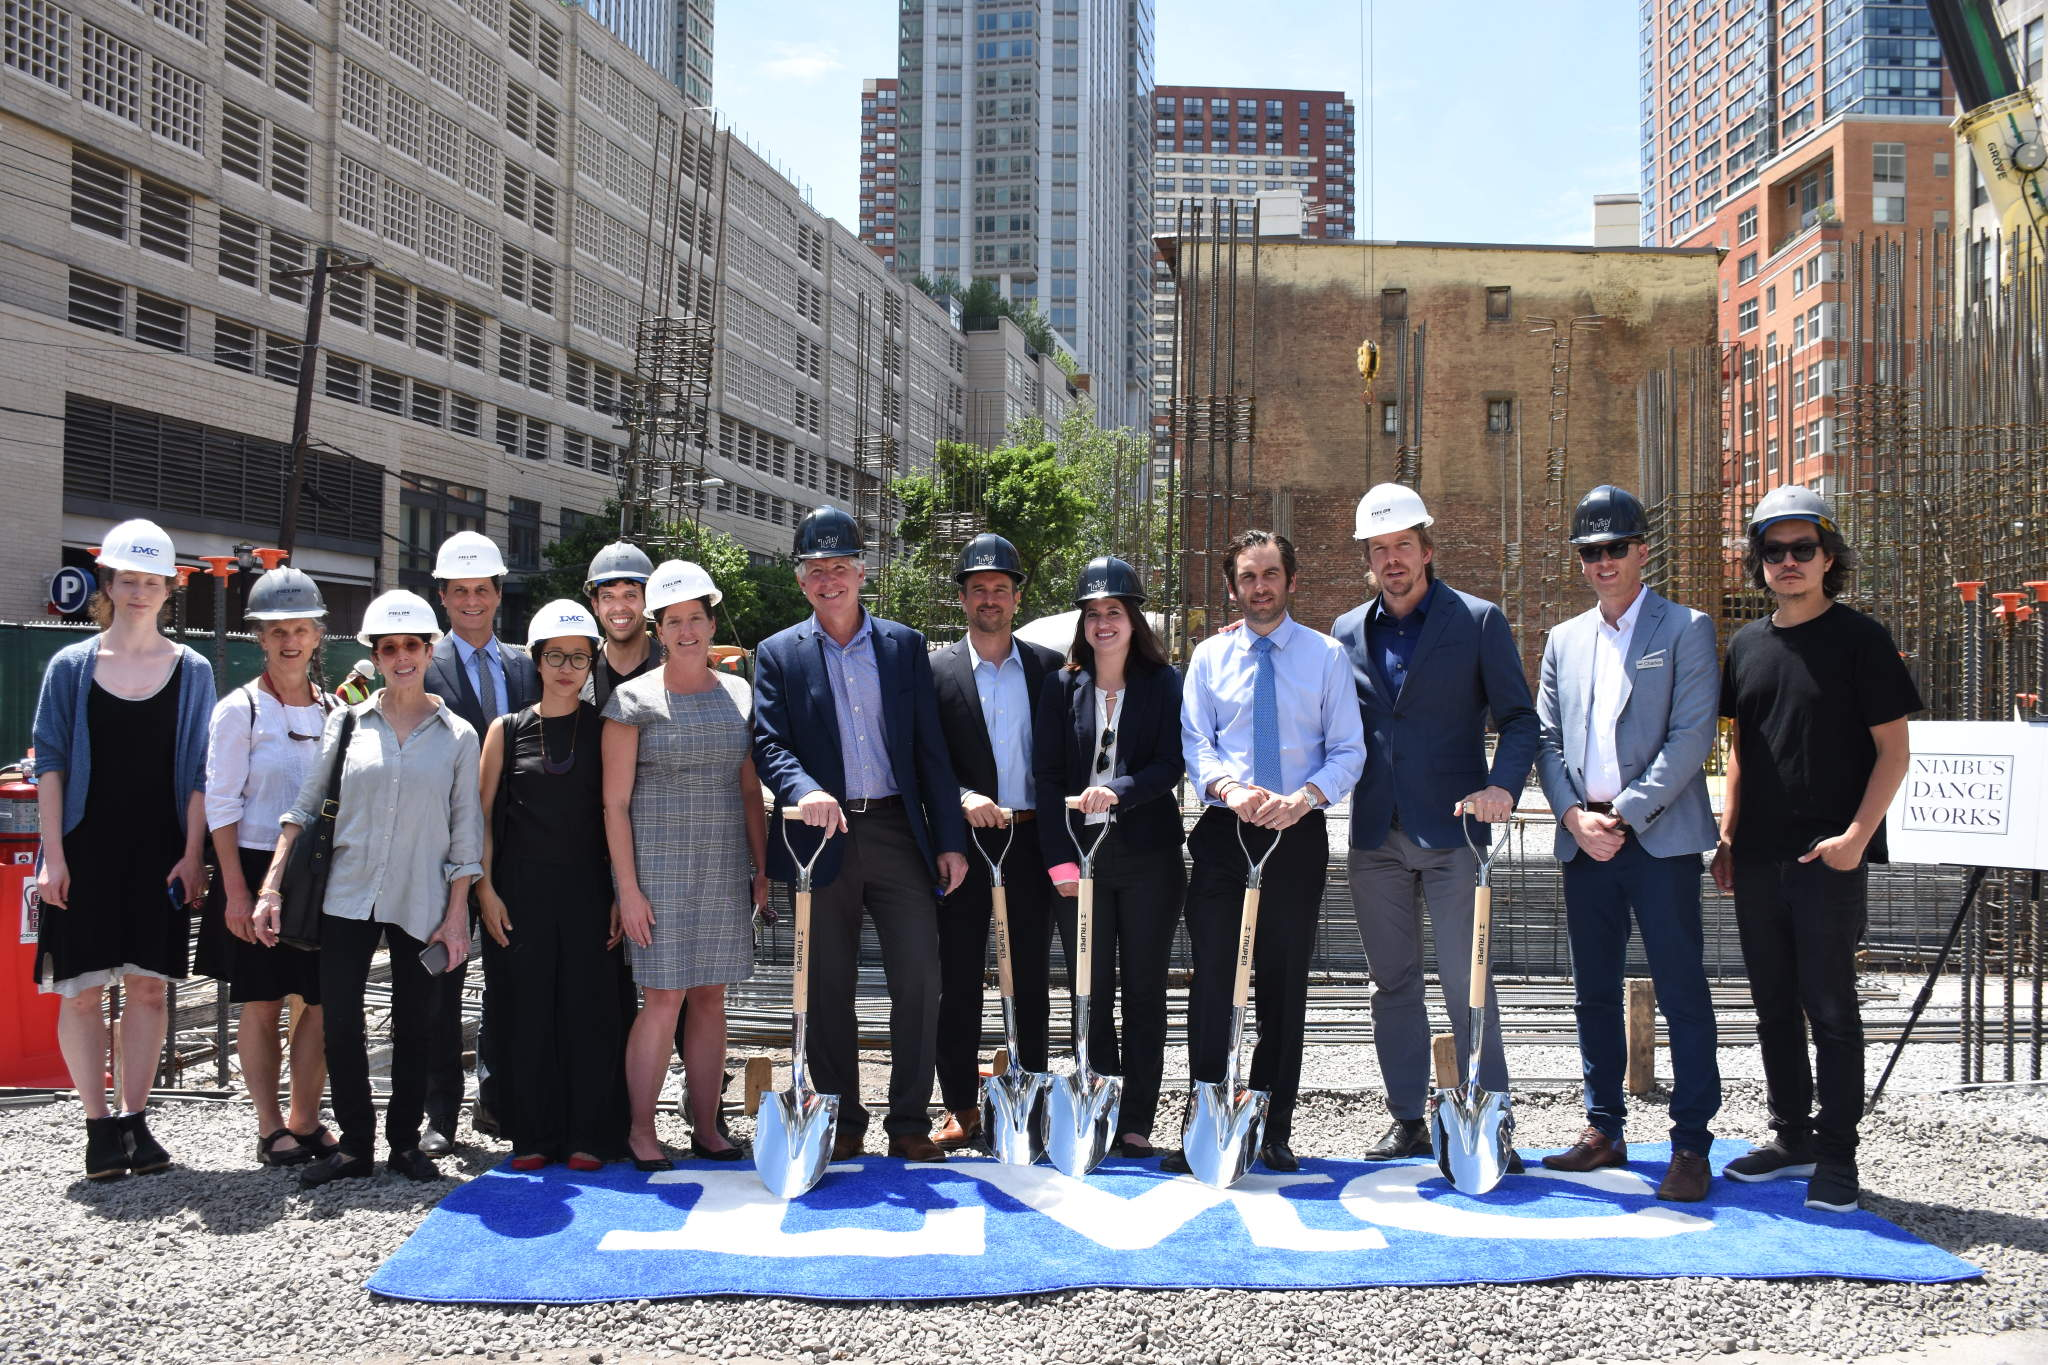 At the groundbreaking of 321 Warren Street. Photo credit: Pat Byrne